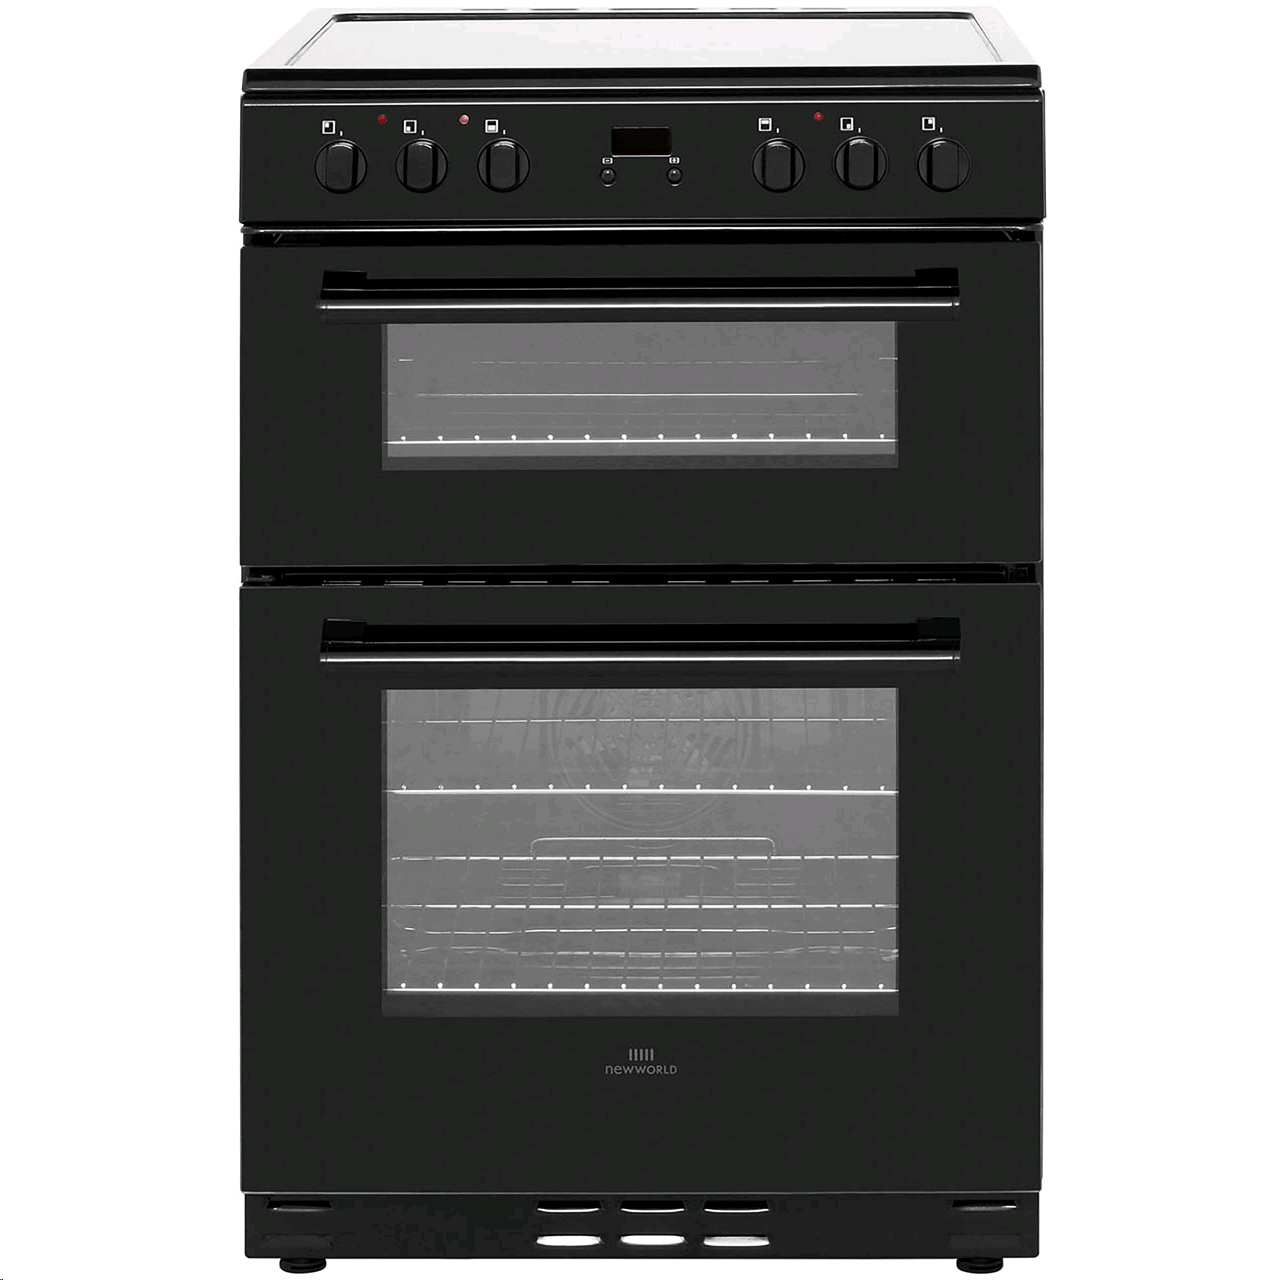 New World Electric Cooker 60cm Double Oven in Black Digital Timer